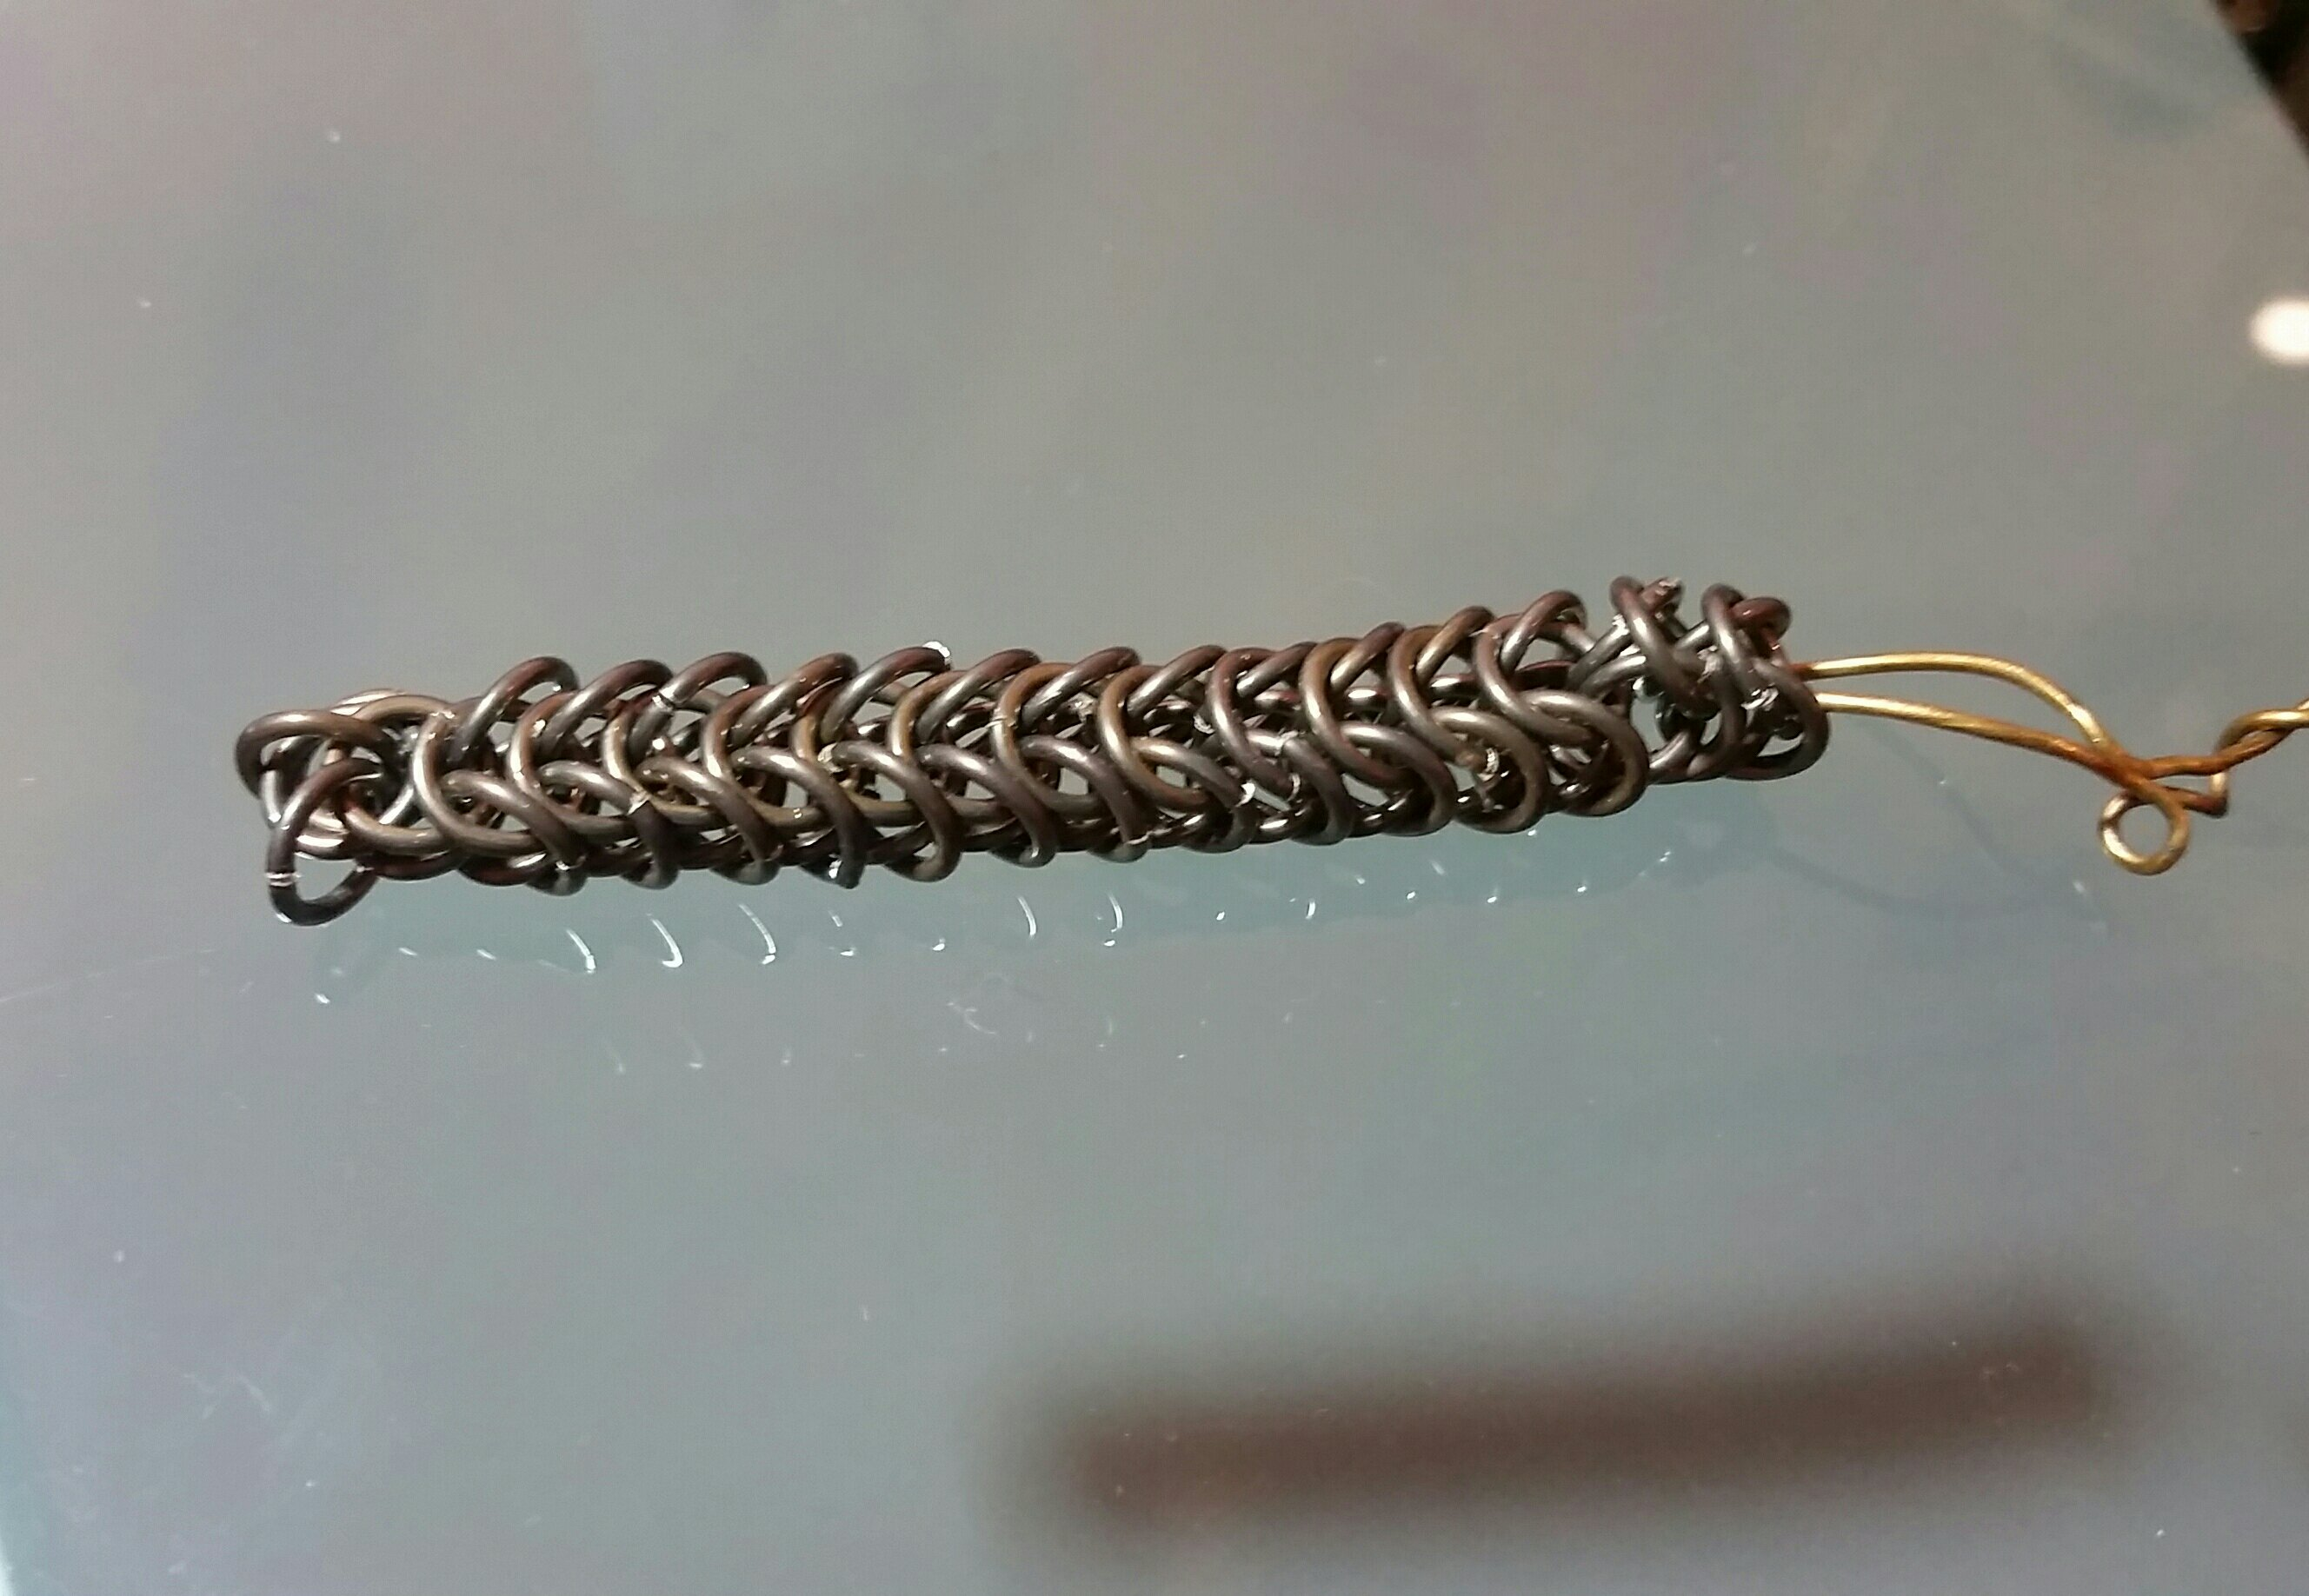 Foxtail chain in progress